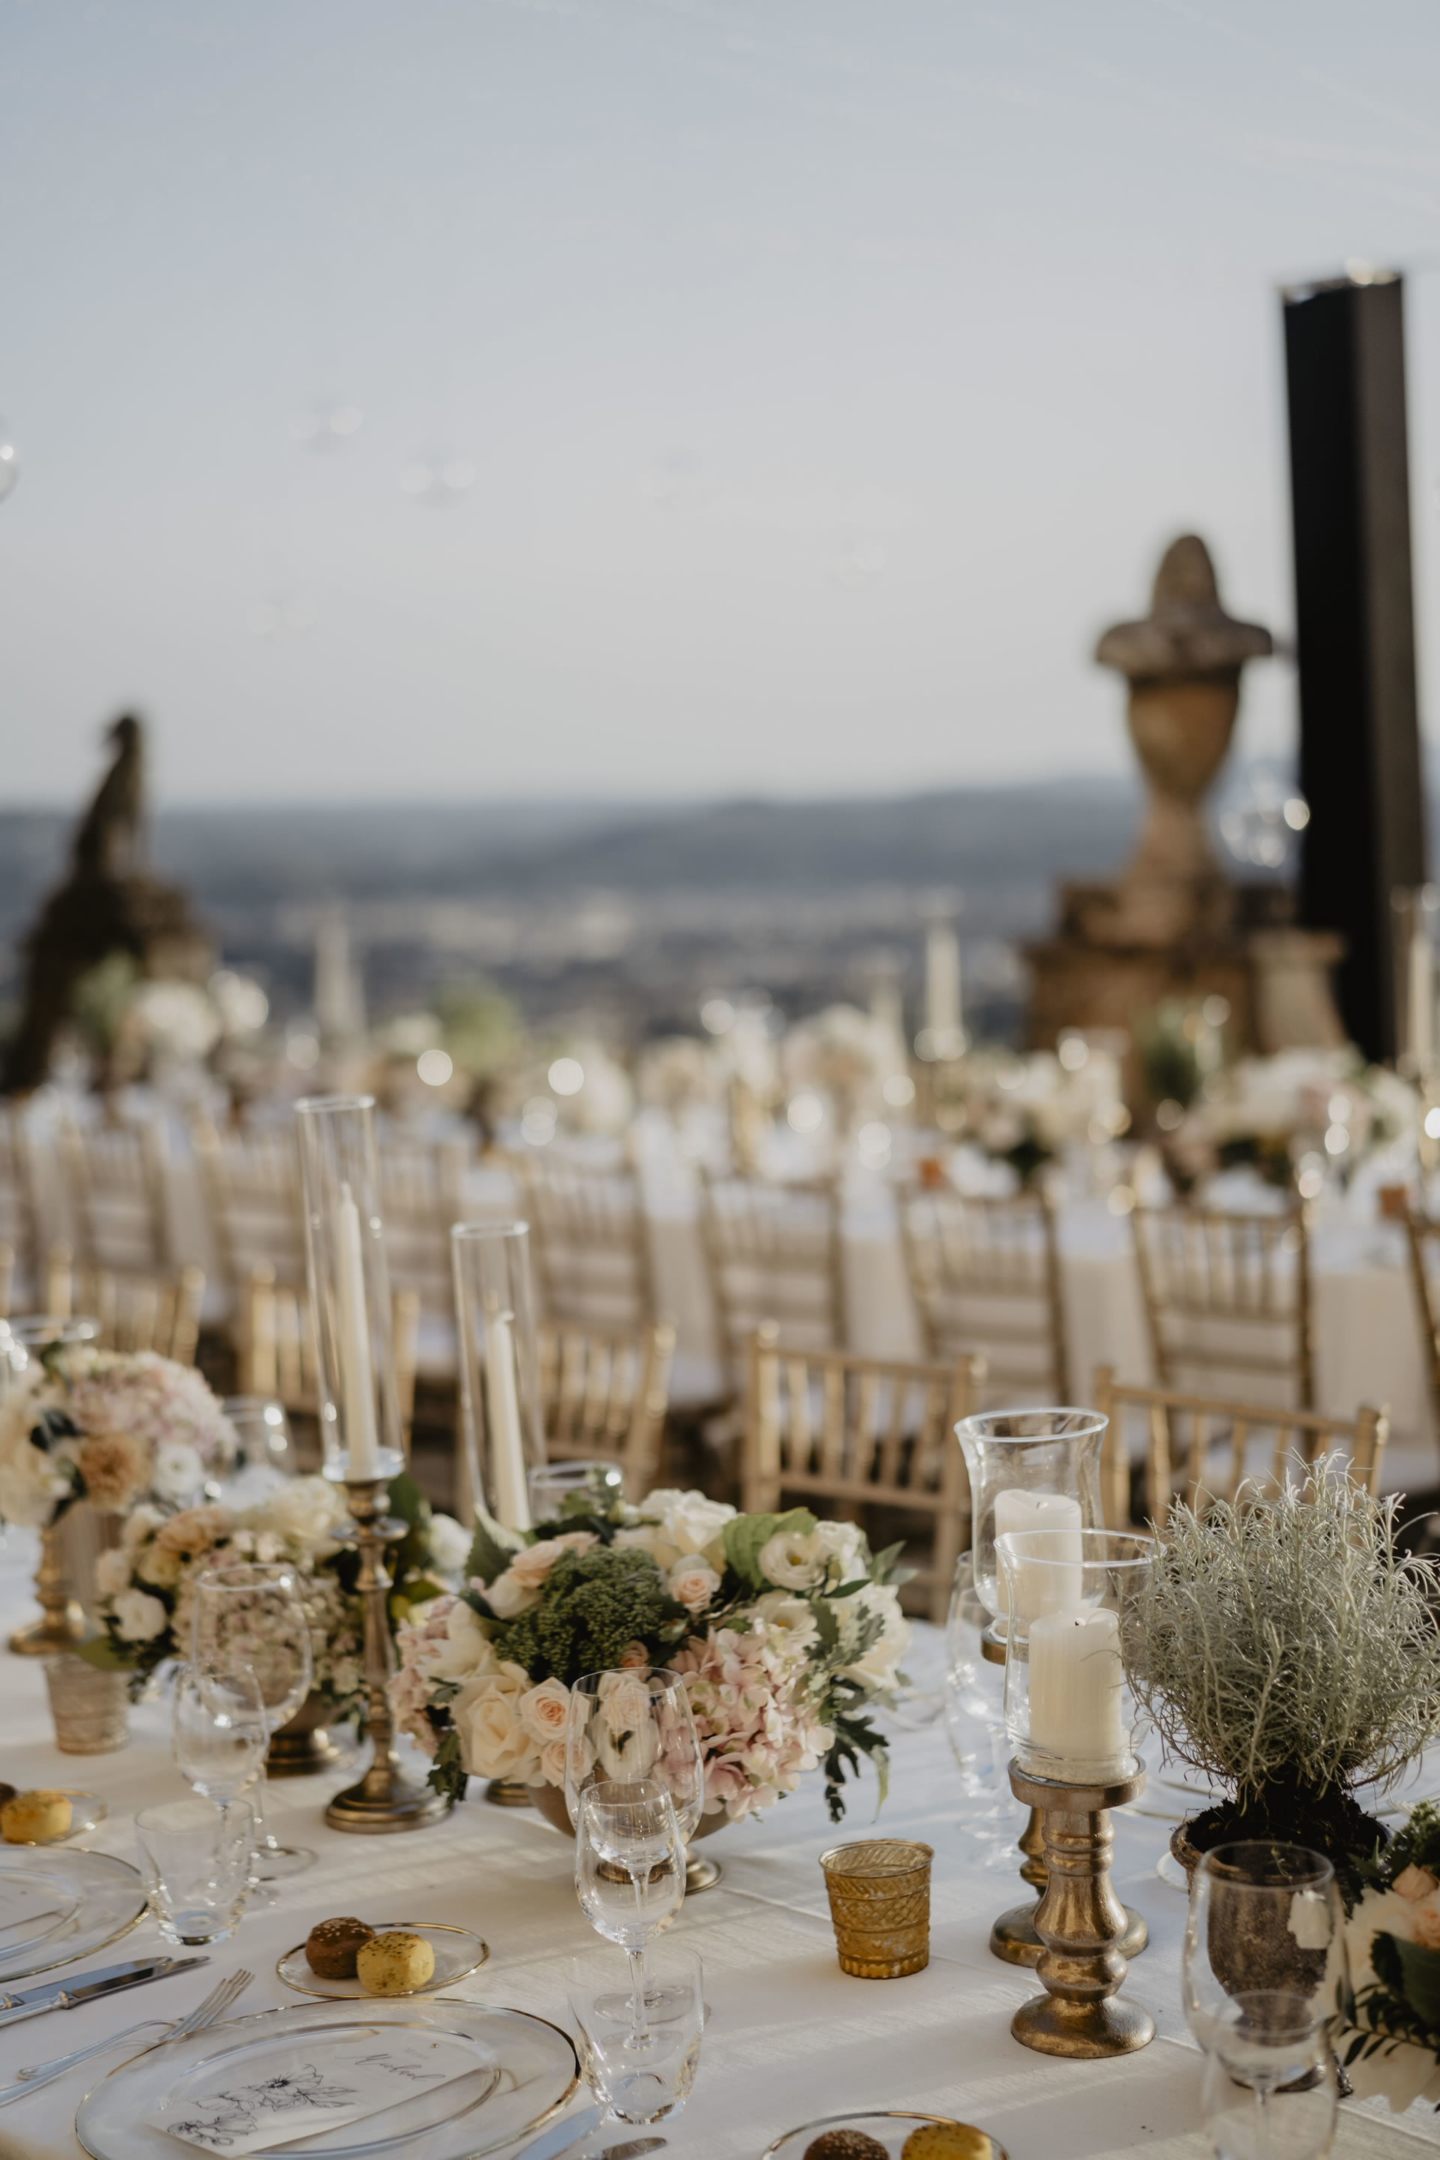 - 70 :: From Los angeles to Florence: a glamour asiatic wedding :: Luxury wedding photography - 69 ::  - 70